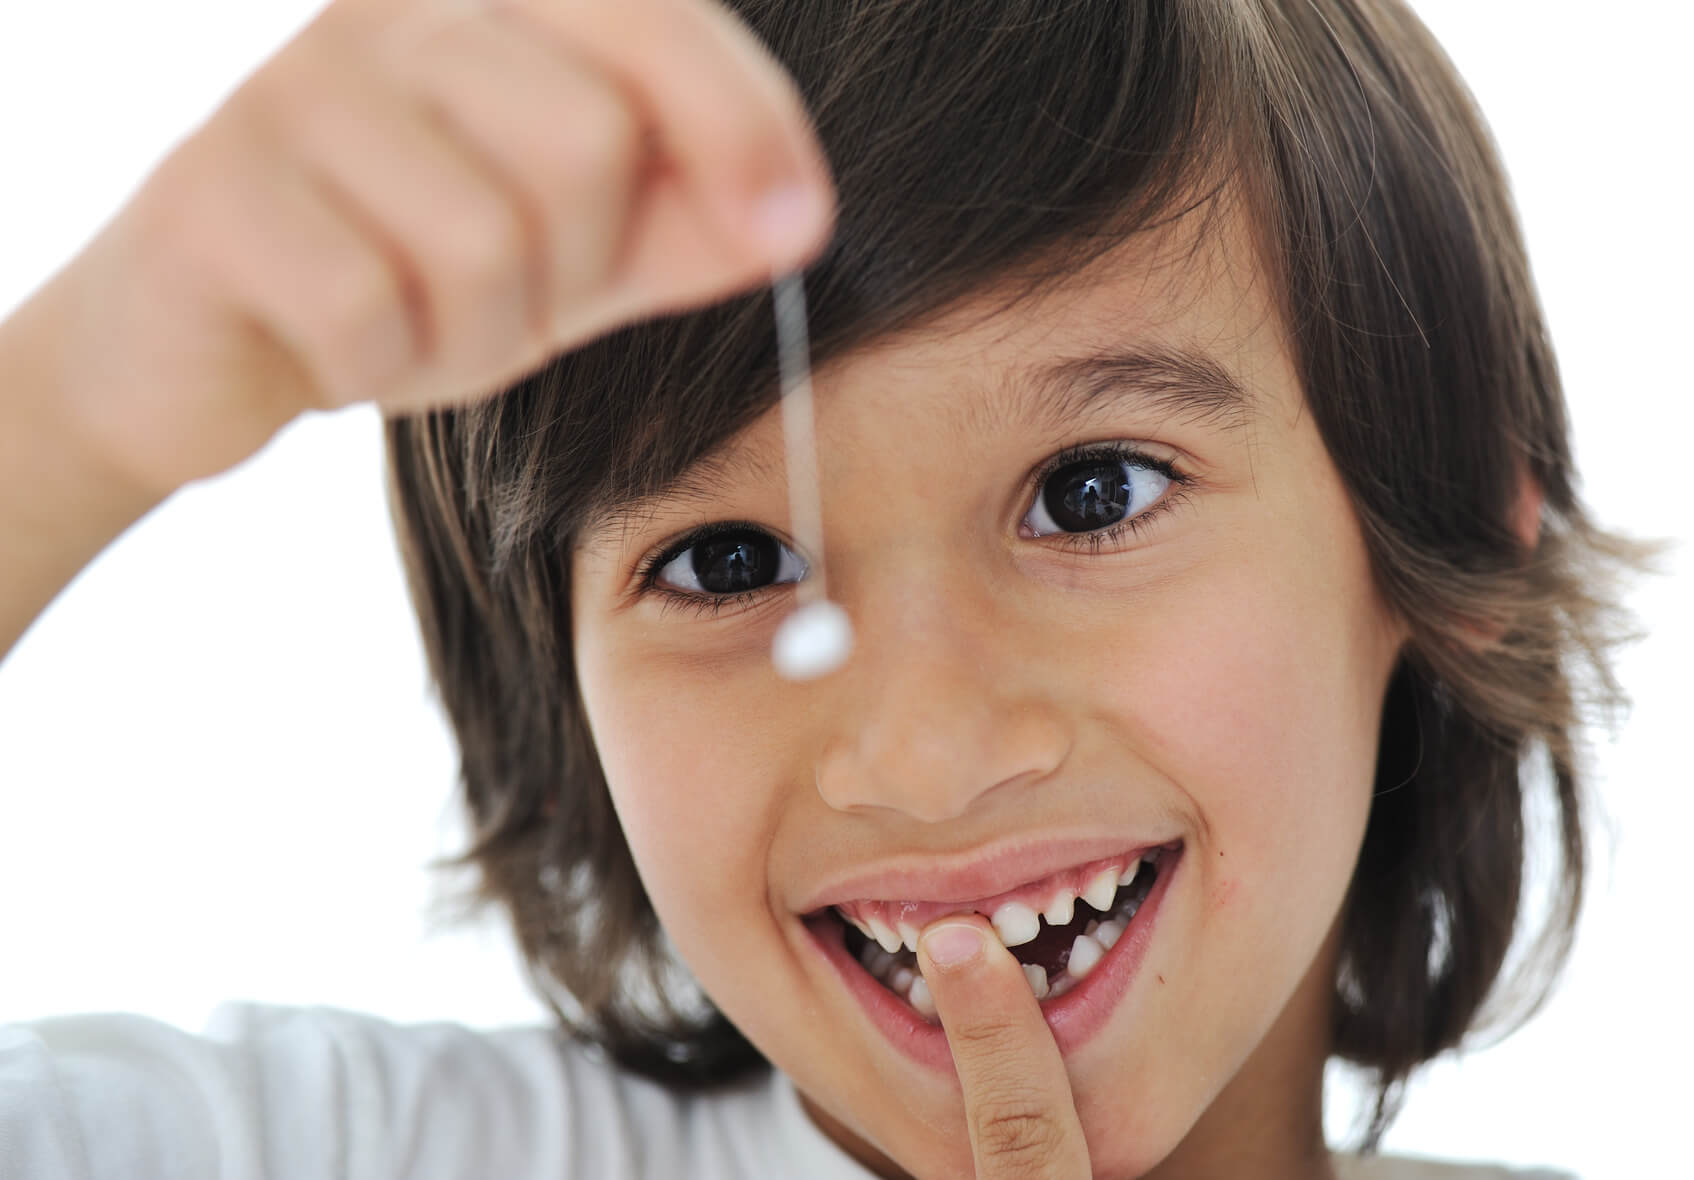 Redwood Pediatric Dentistry in Salt Lake City Utah can show you how to make losing teeth fun for your child